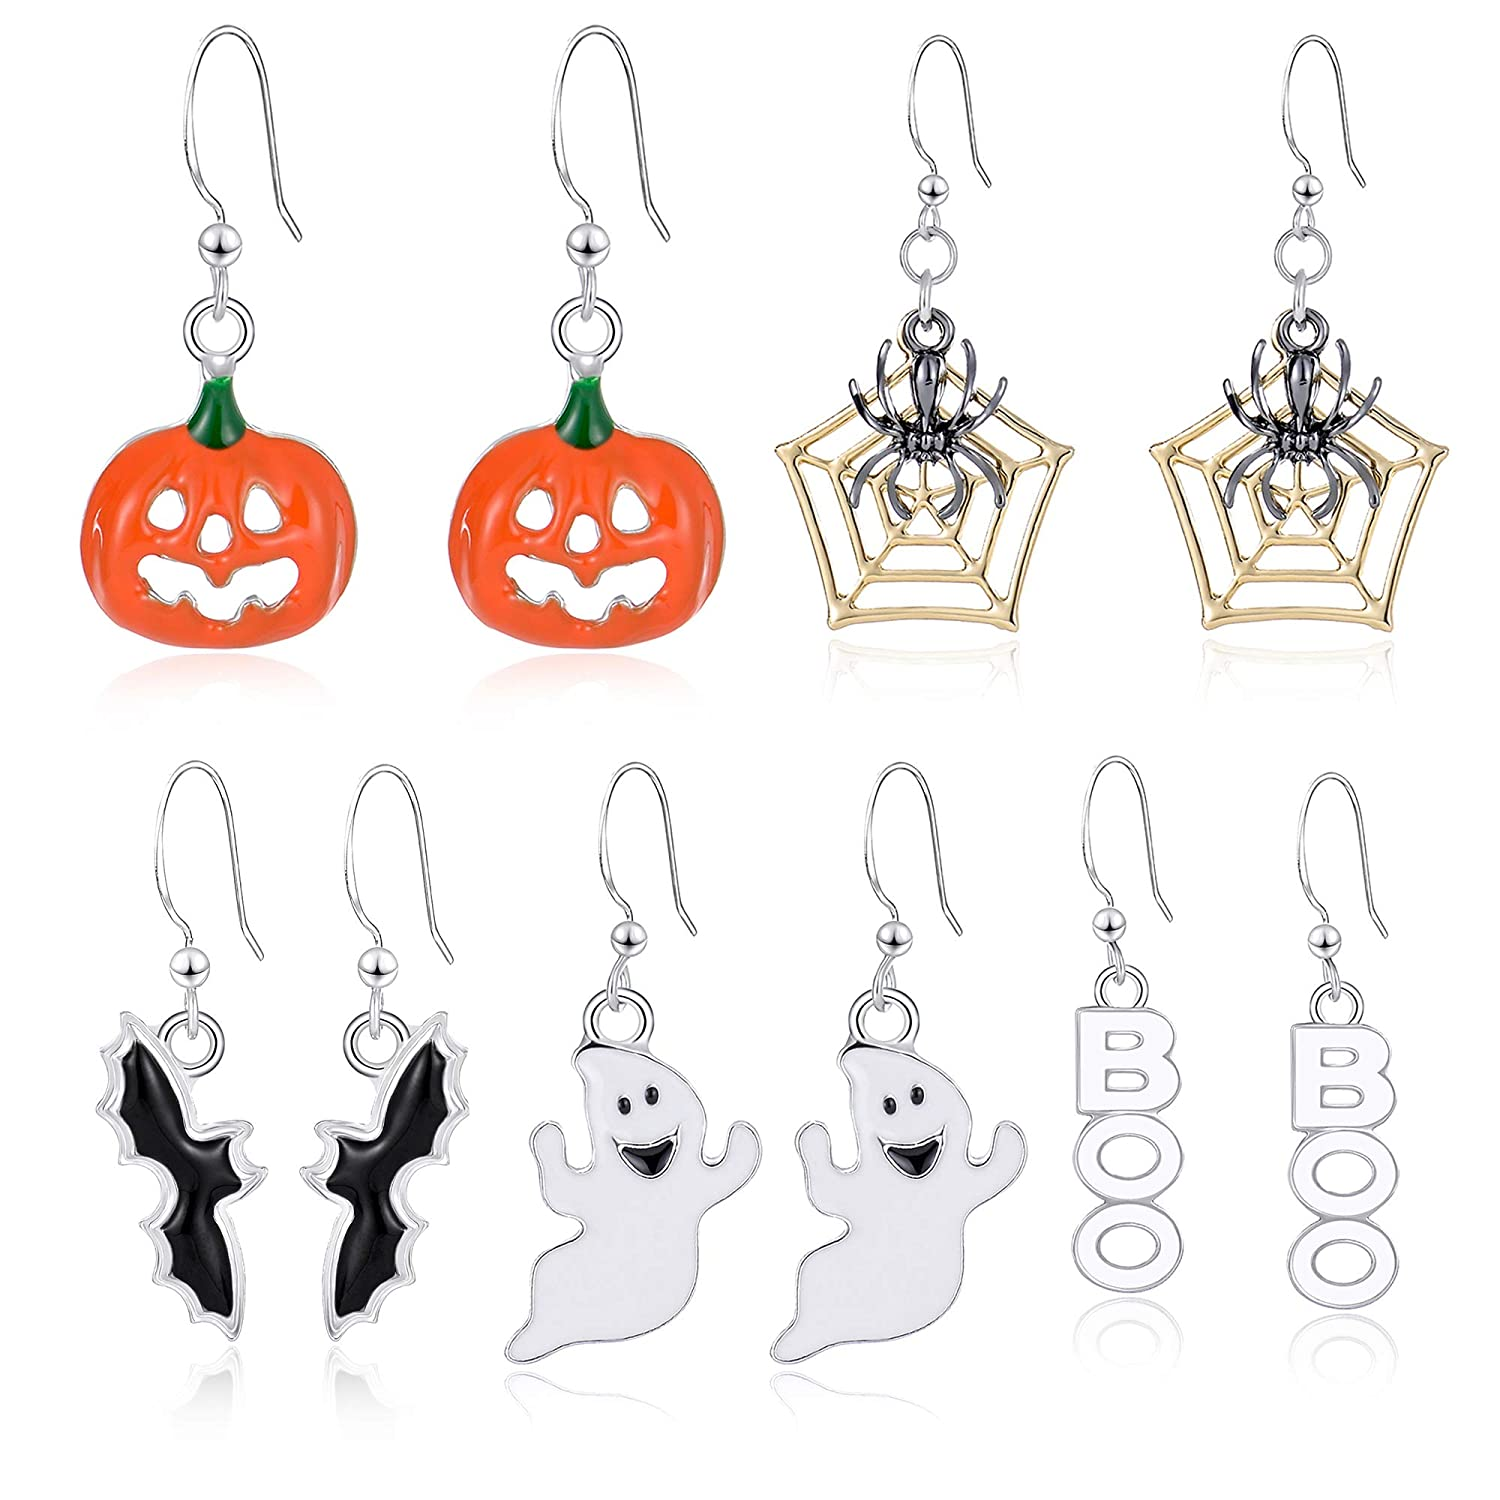 Miraculous Garden Halloween Theme 5 Pairs Drop Dangle Earrings Sets Including Halloween Spider Web Pumpkin Ghost Bat Boo Halloween Earrings for Women Girls HXHE0101A-5